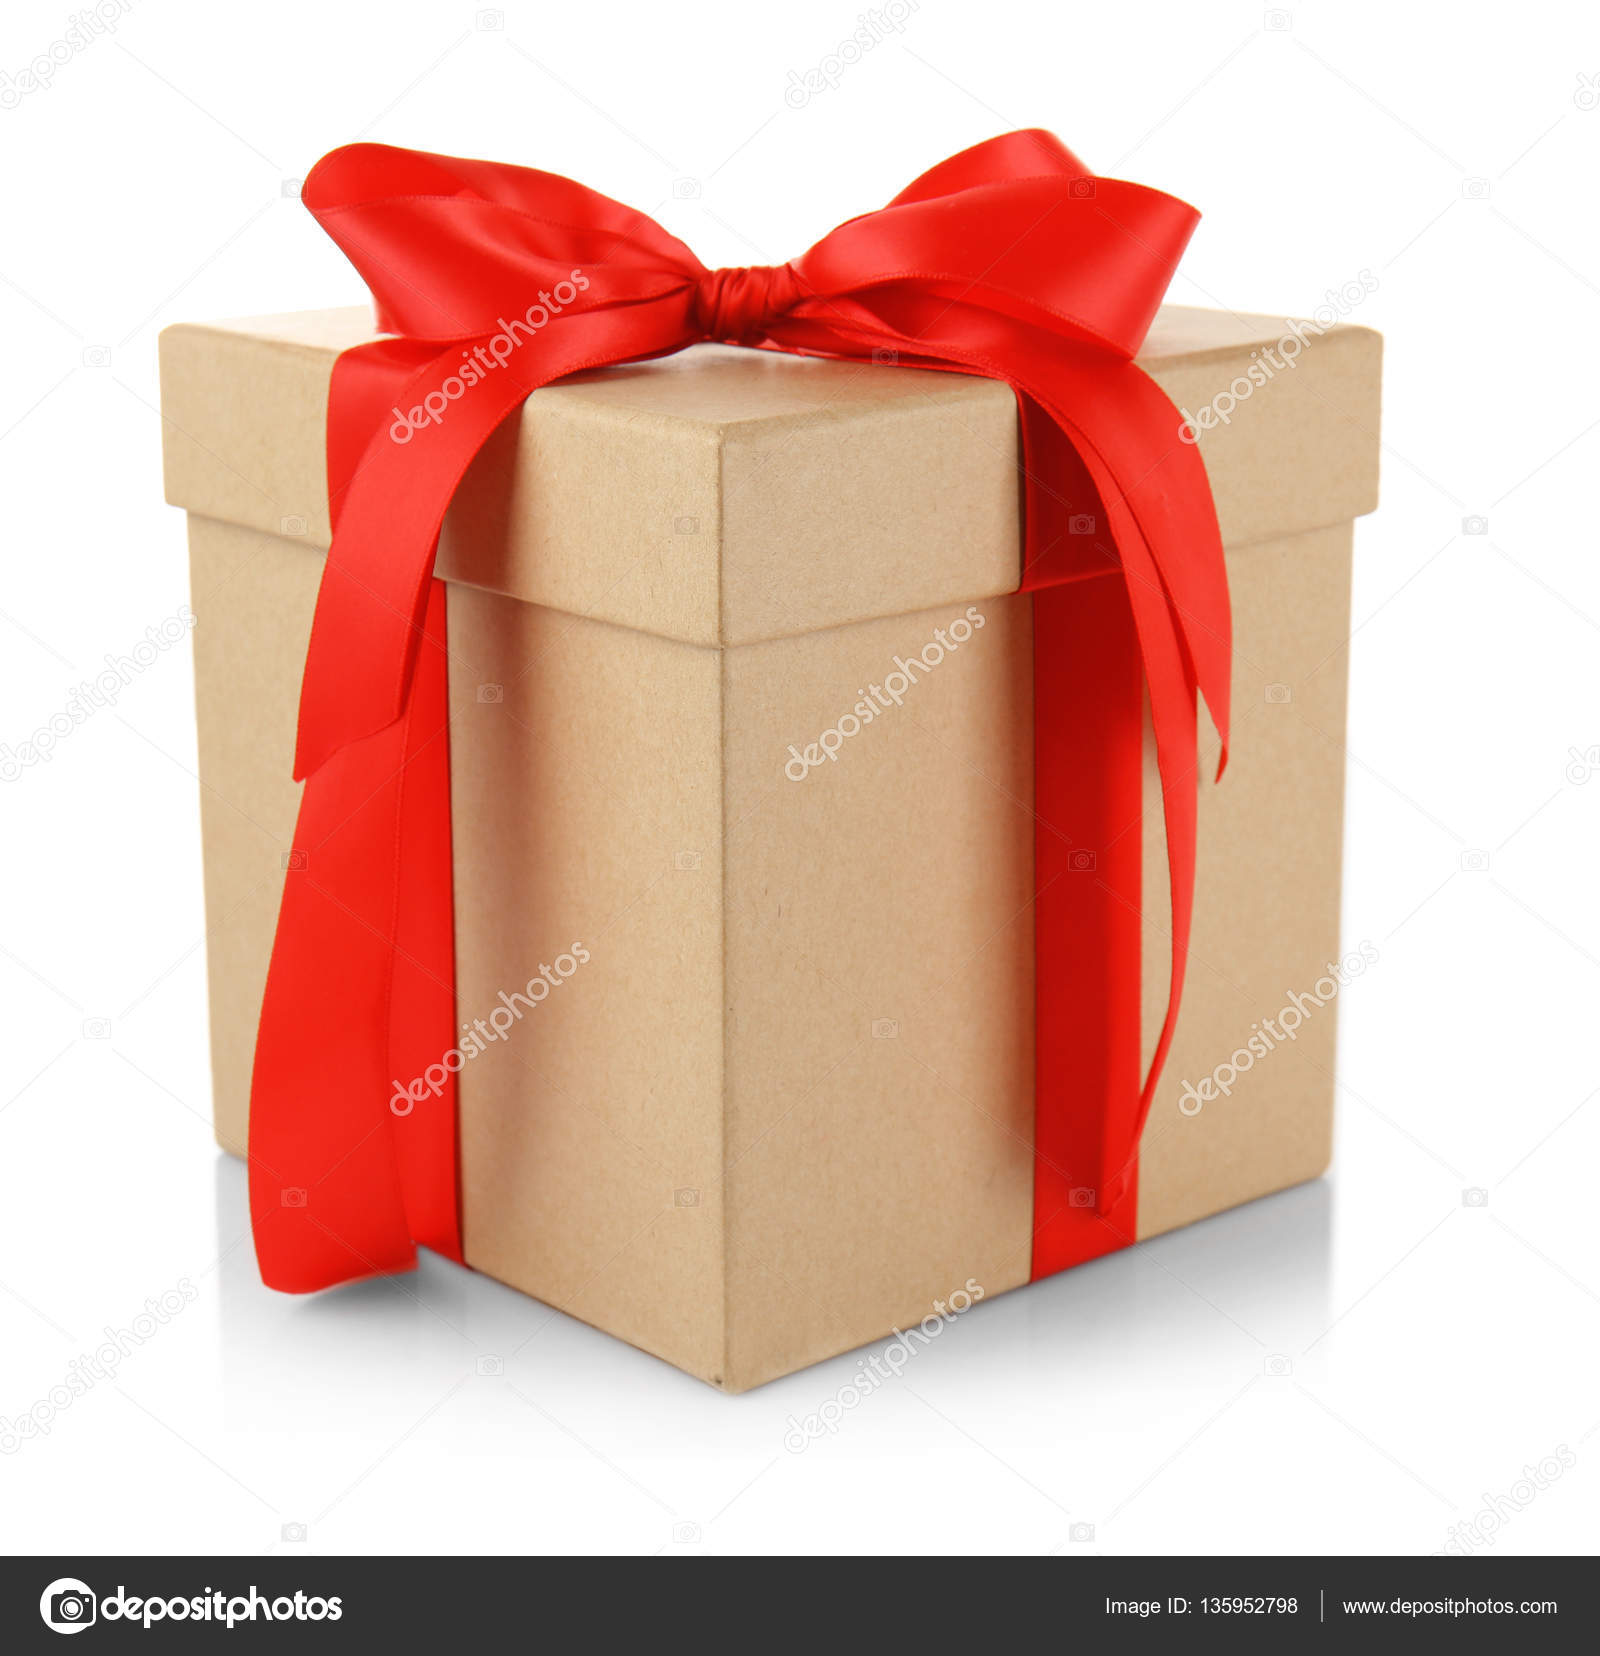 Gift box with bow Big Gift Box With Bow Stock Photo Depositphotos Gift Box With Bow Stock Photo Belchonock 135952798